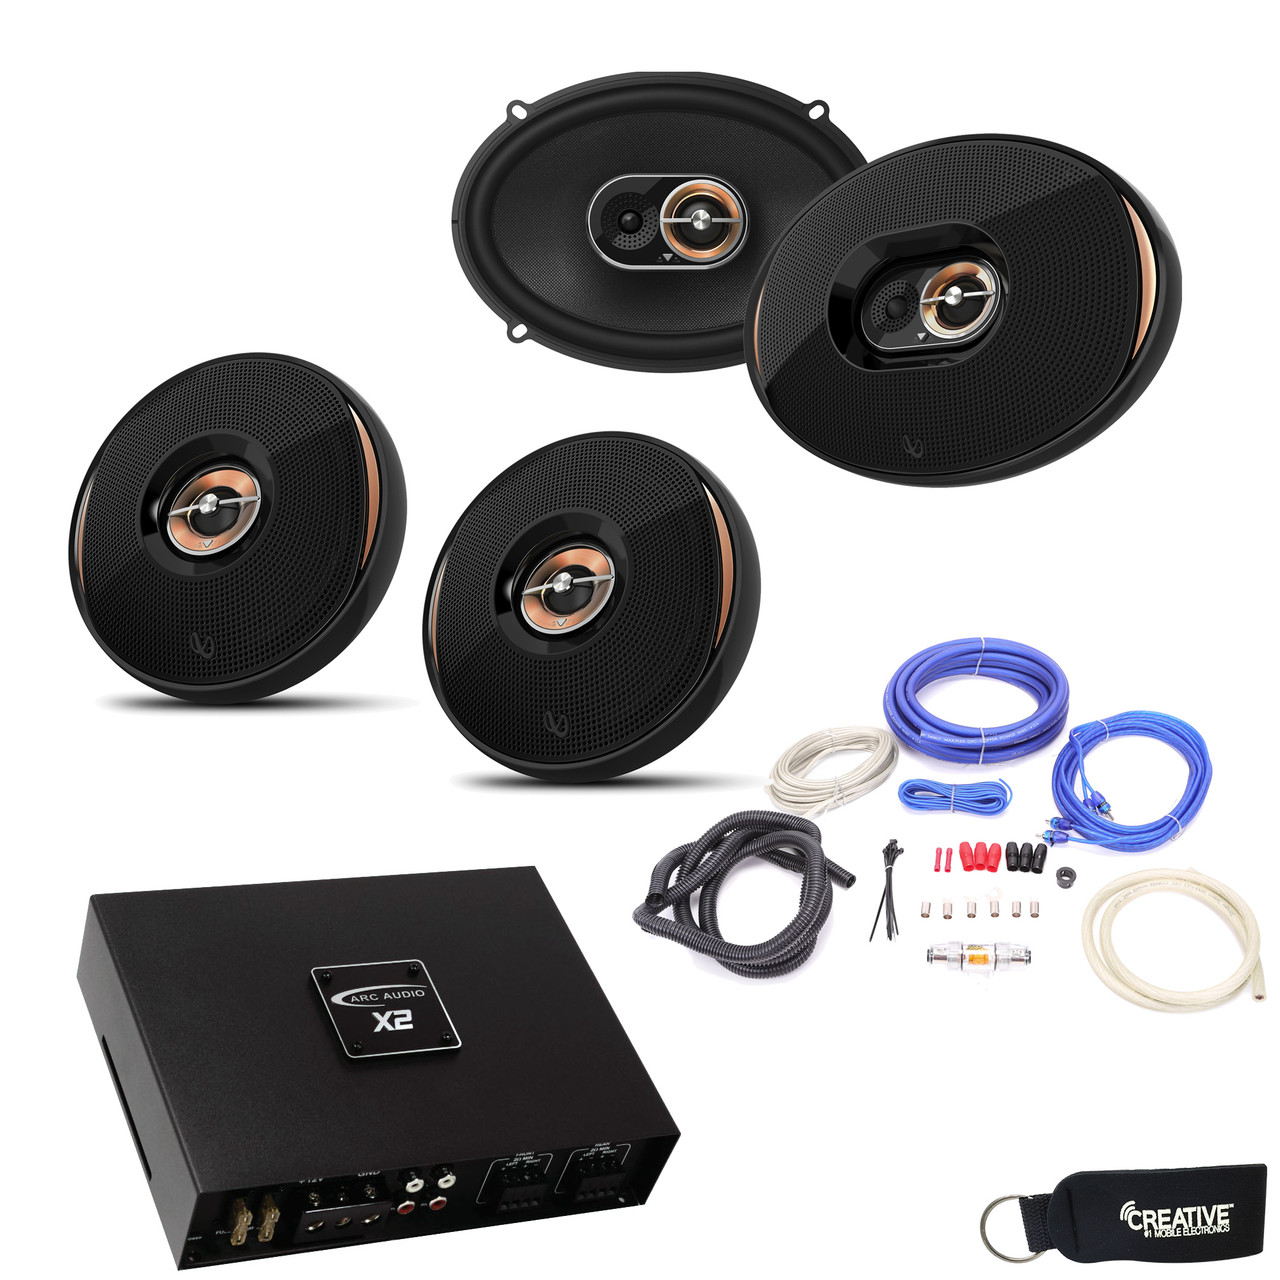 Infinity KAPPA 90CSX 6x9 Components 93IX Coax Speakers ARC Audio X2 4504 4 Channel Amp Wire